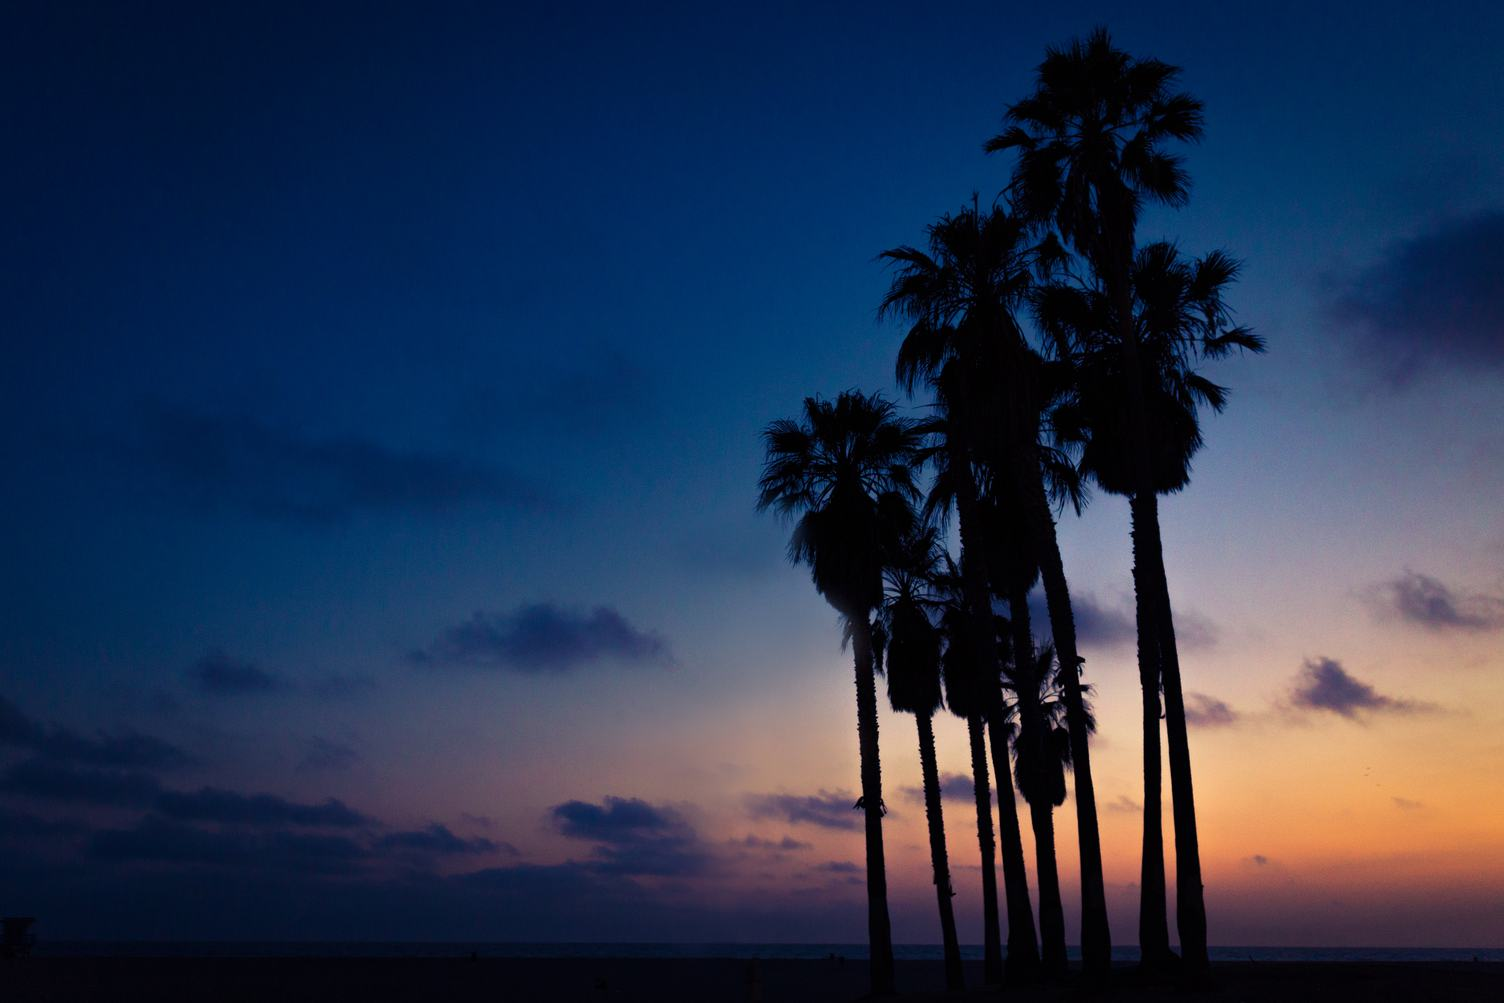 Palm Trees at Sunset against Navy Blue Sky